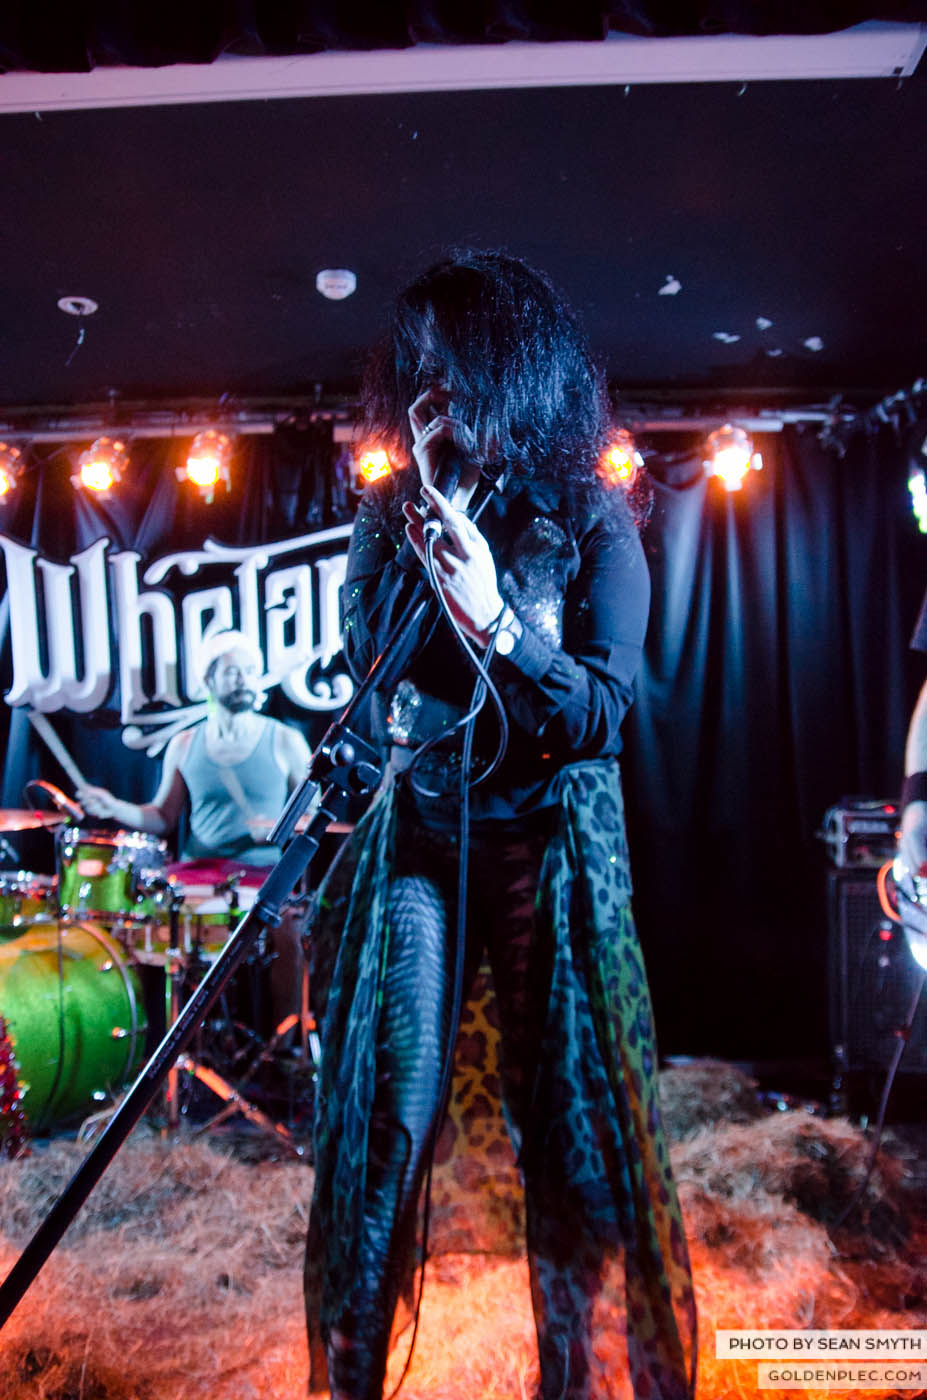 fight-likes-apes-at-whelans-by-sean-smyth-20-12-14-15-of-34